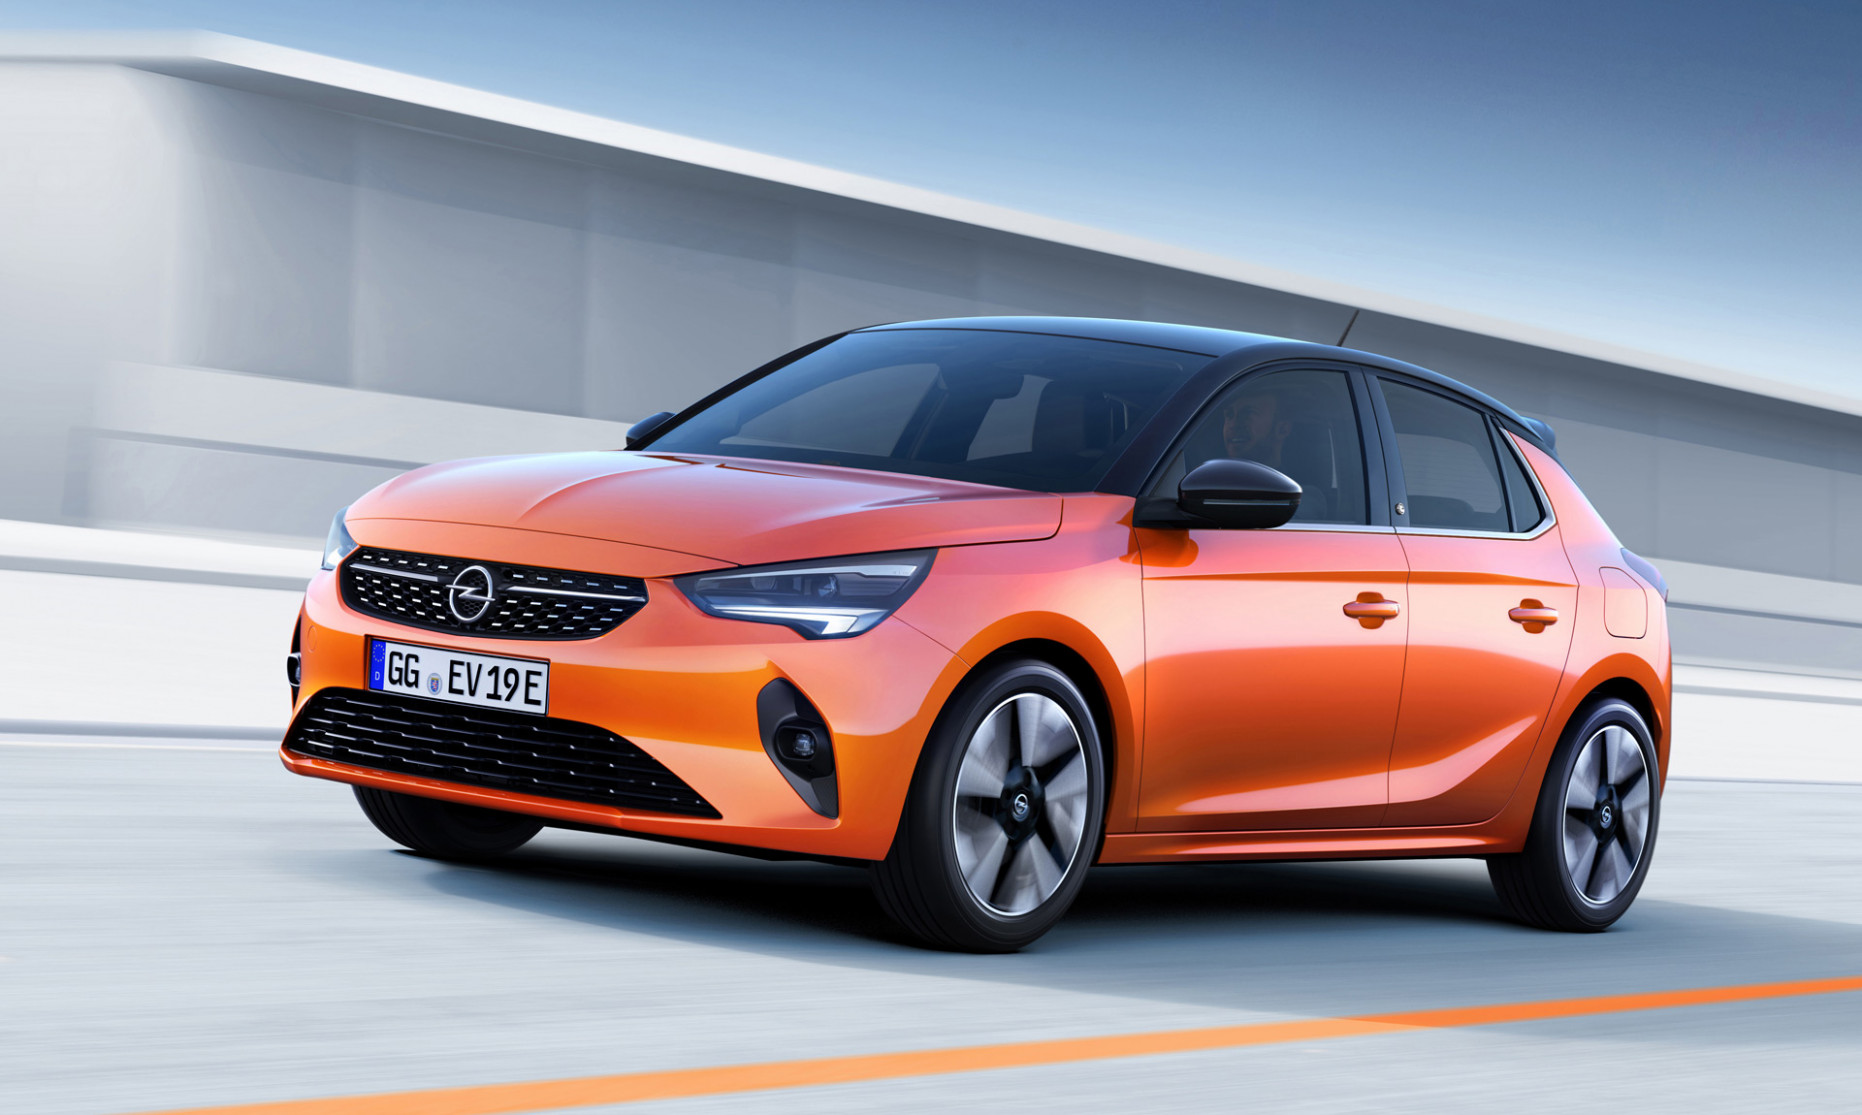 Redesign and Review Opel Will Launch Full-Electric Corsa In 2022